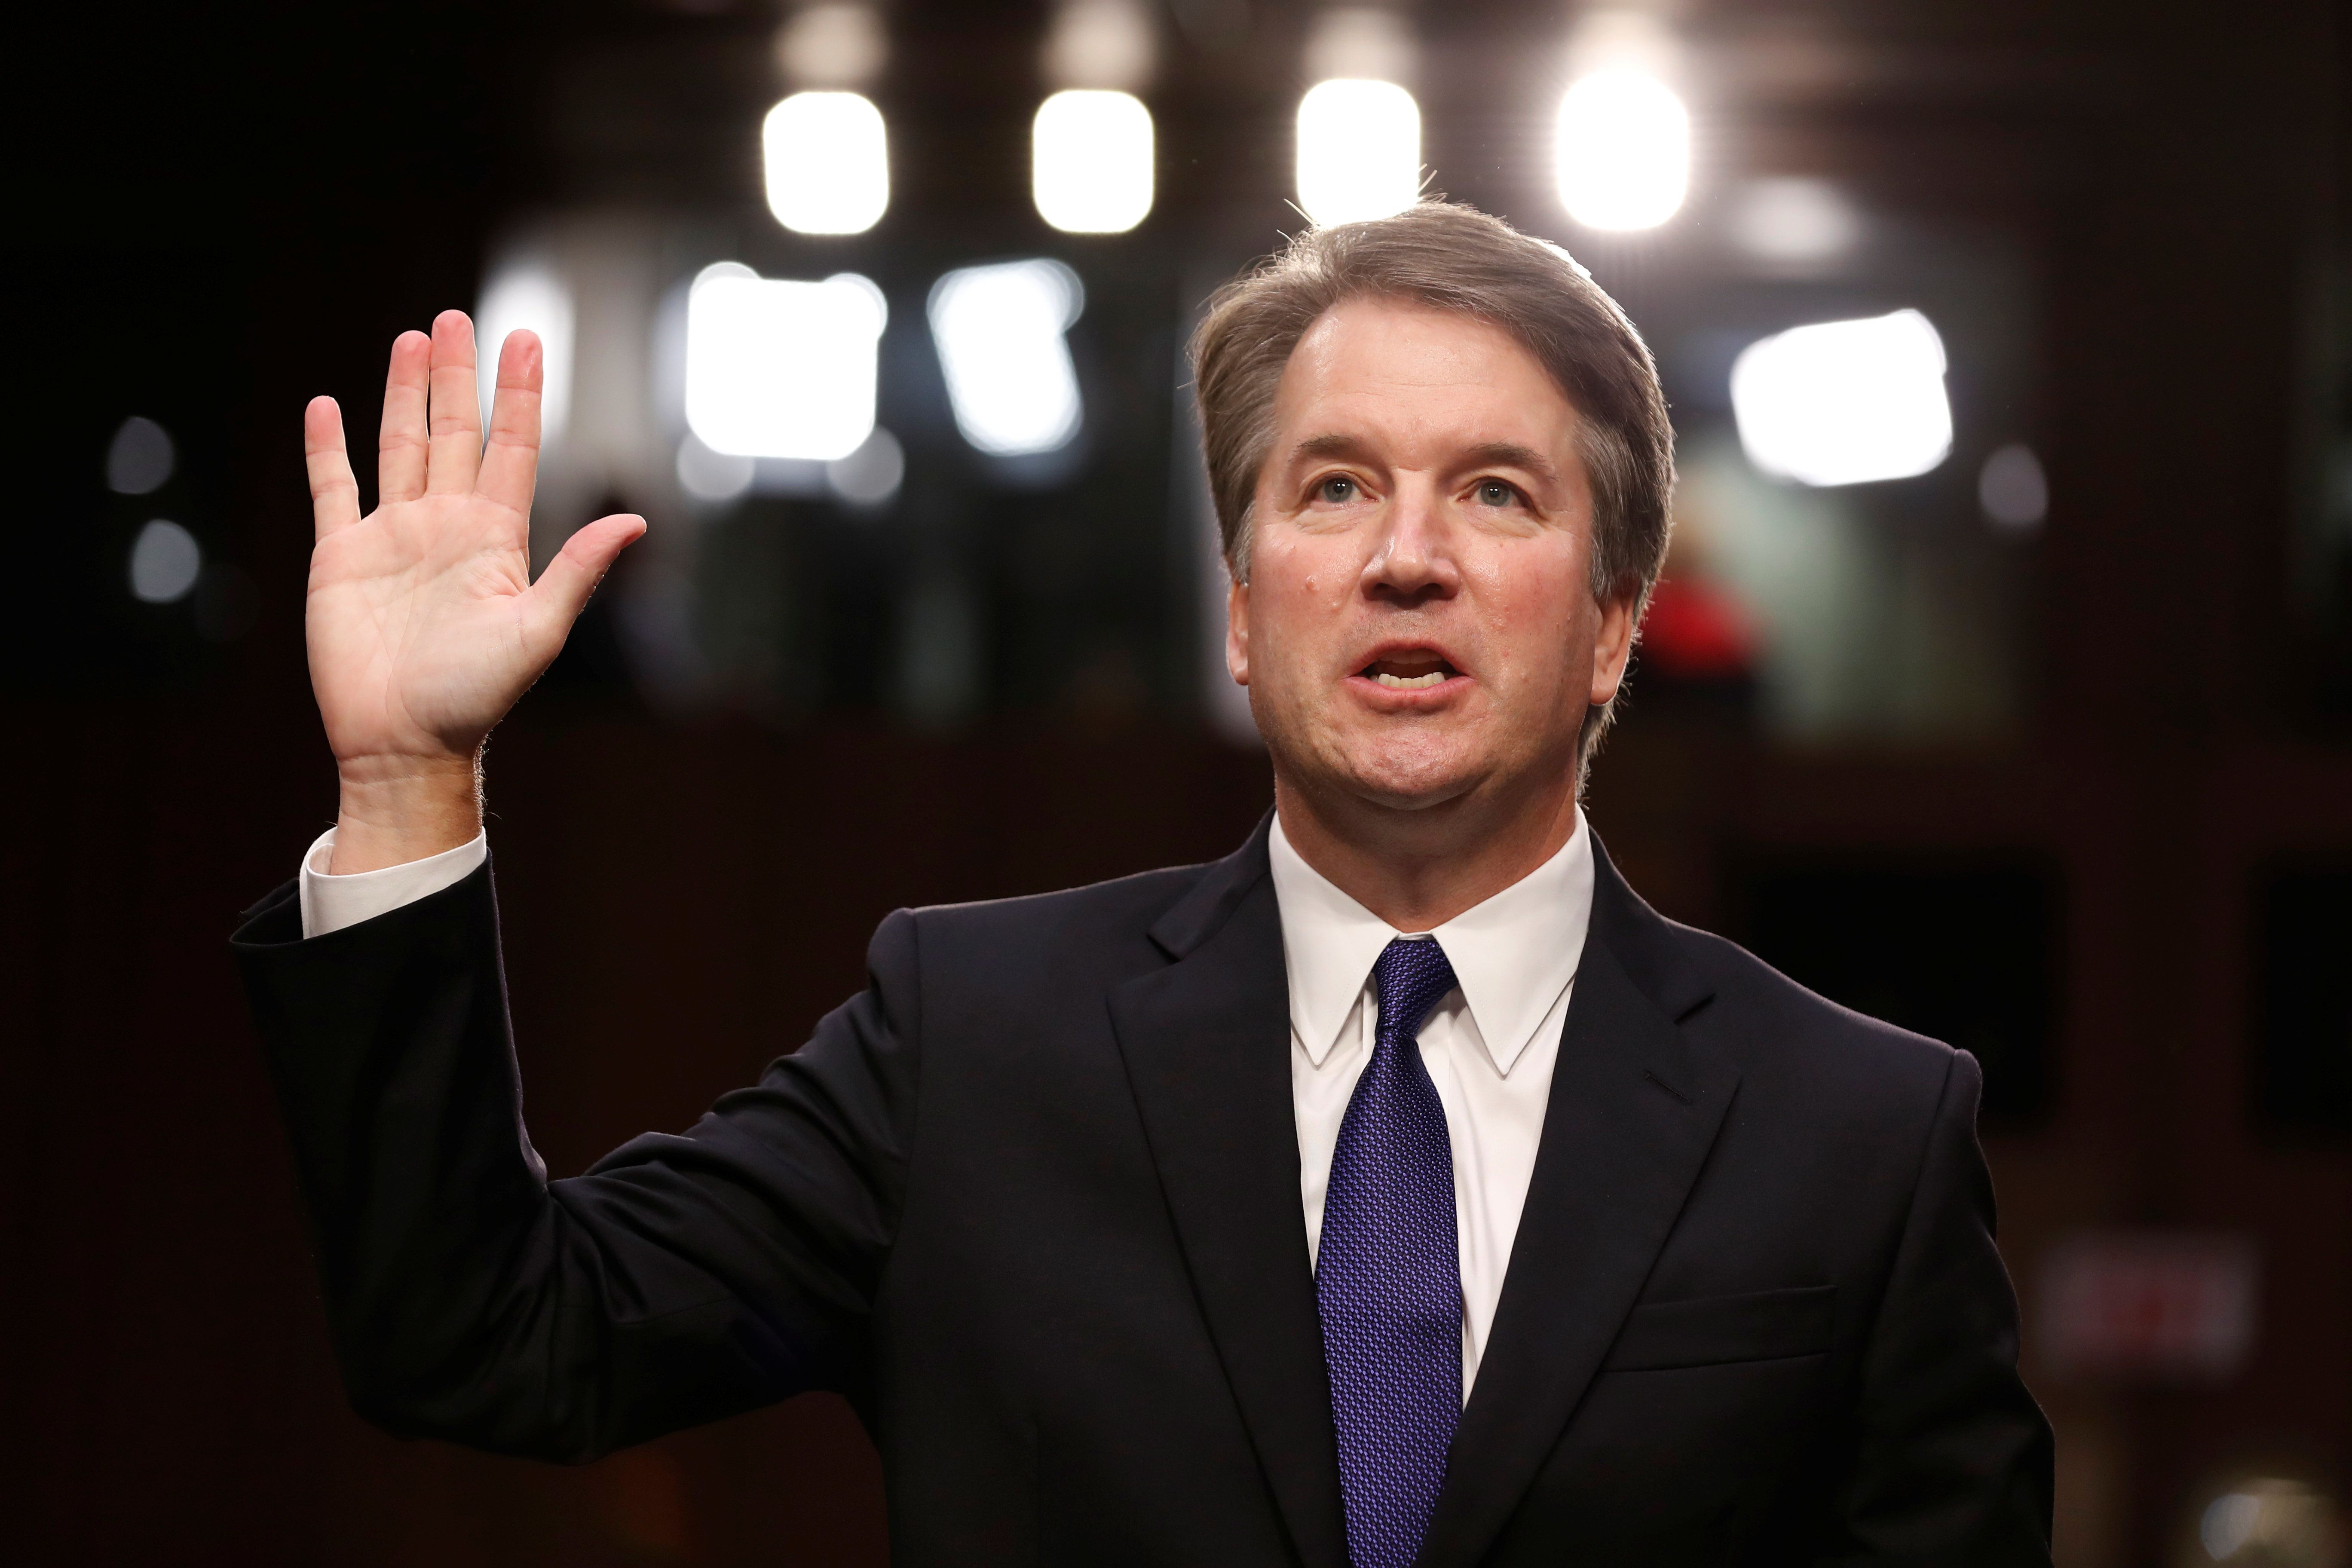 Sexual Assault Groups Stop Work With Senators Over Treatment Of Christine Blasey Ford